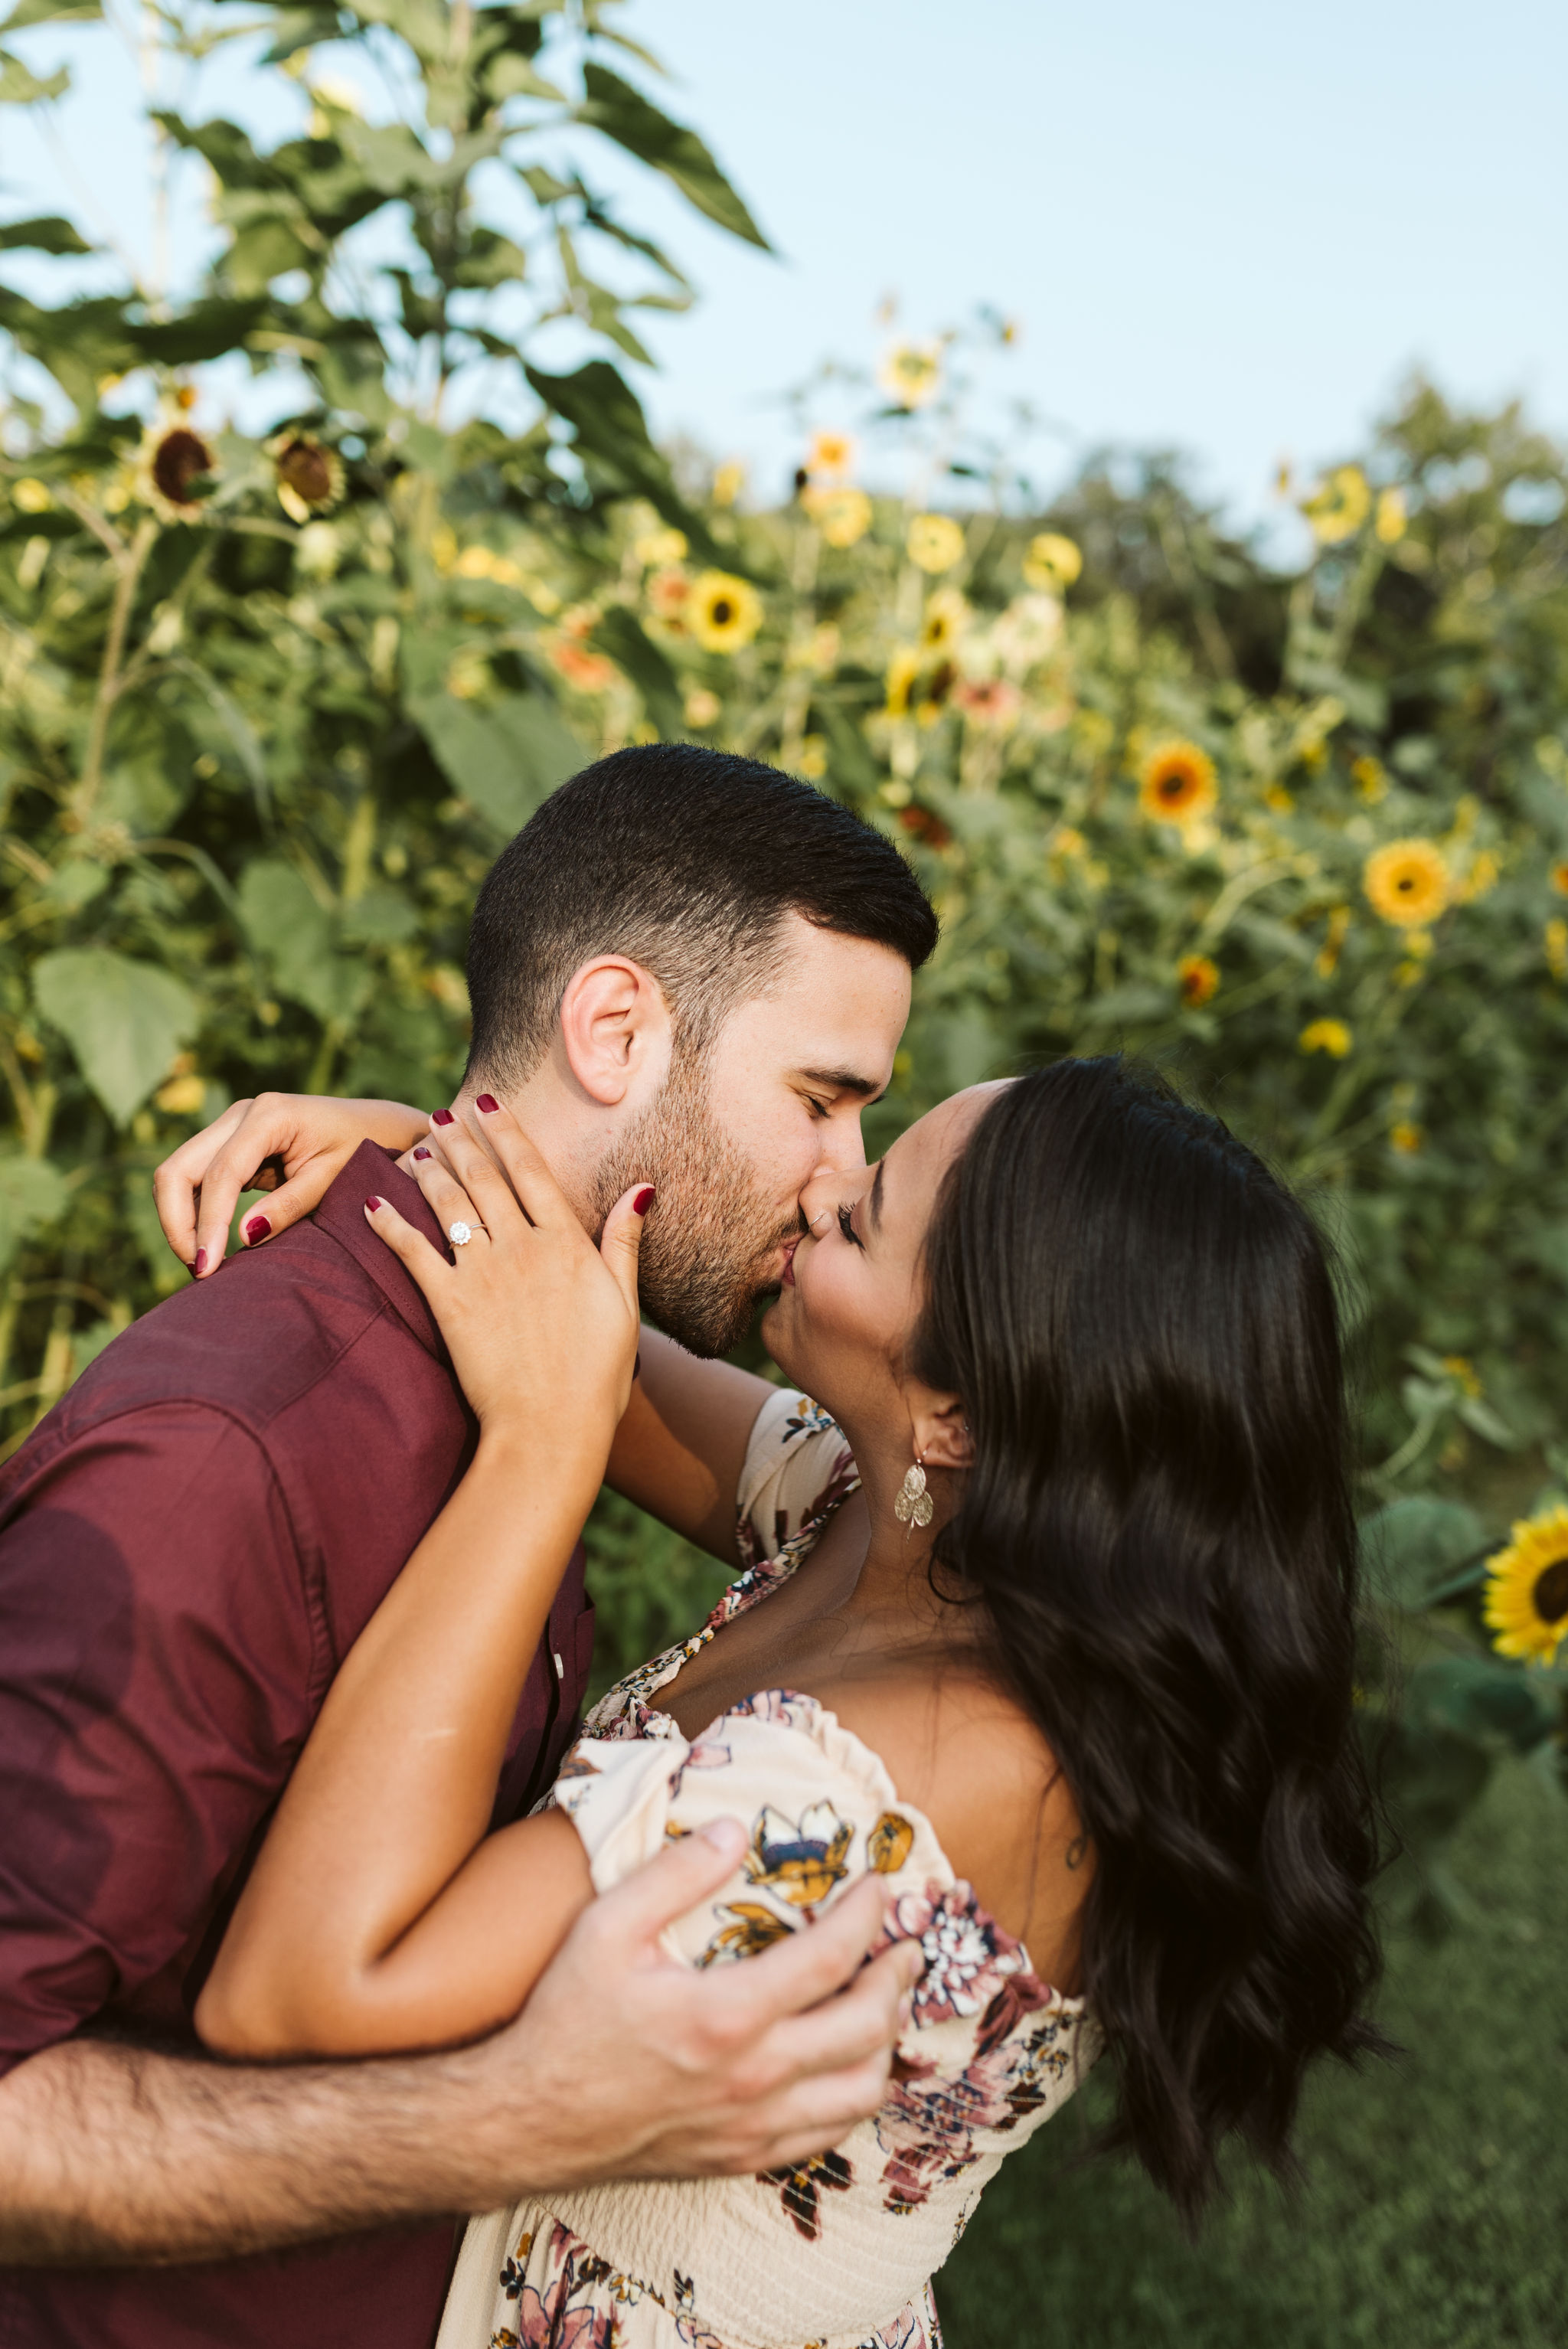 Frederick Maryland, Baltimore Wedding Photographer, Engagement, Bend in the River Farm, Outdoor, Rustic, Nature, Bride and Groom Kissing in Field of Sunflowers, Engagement Ring